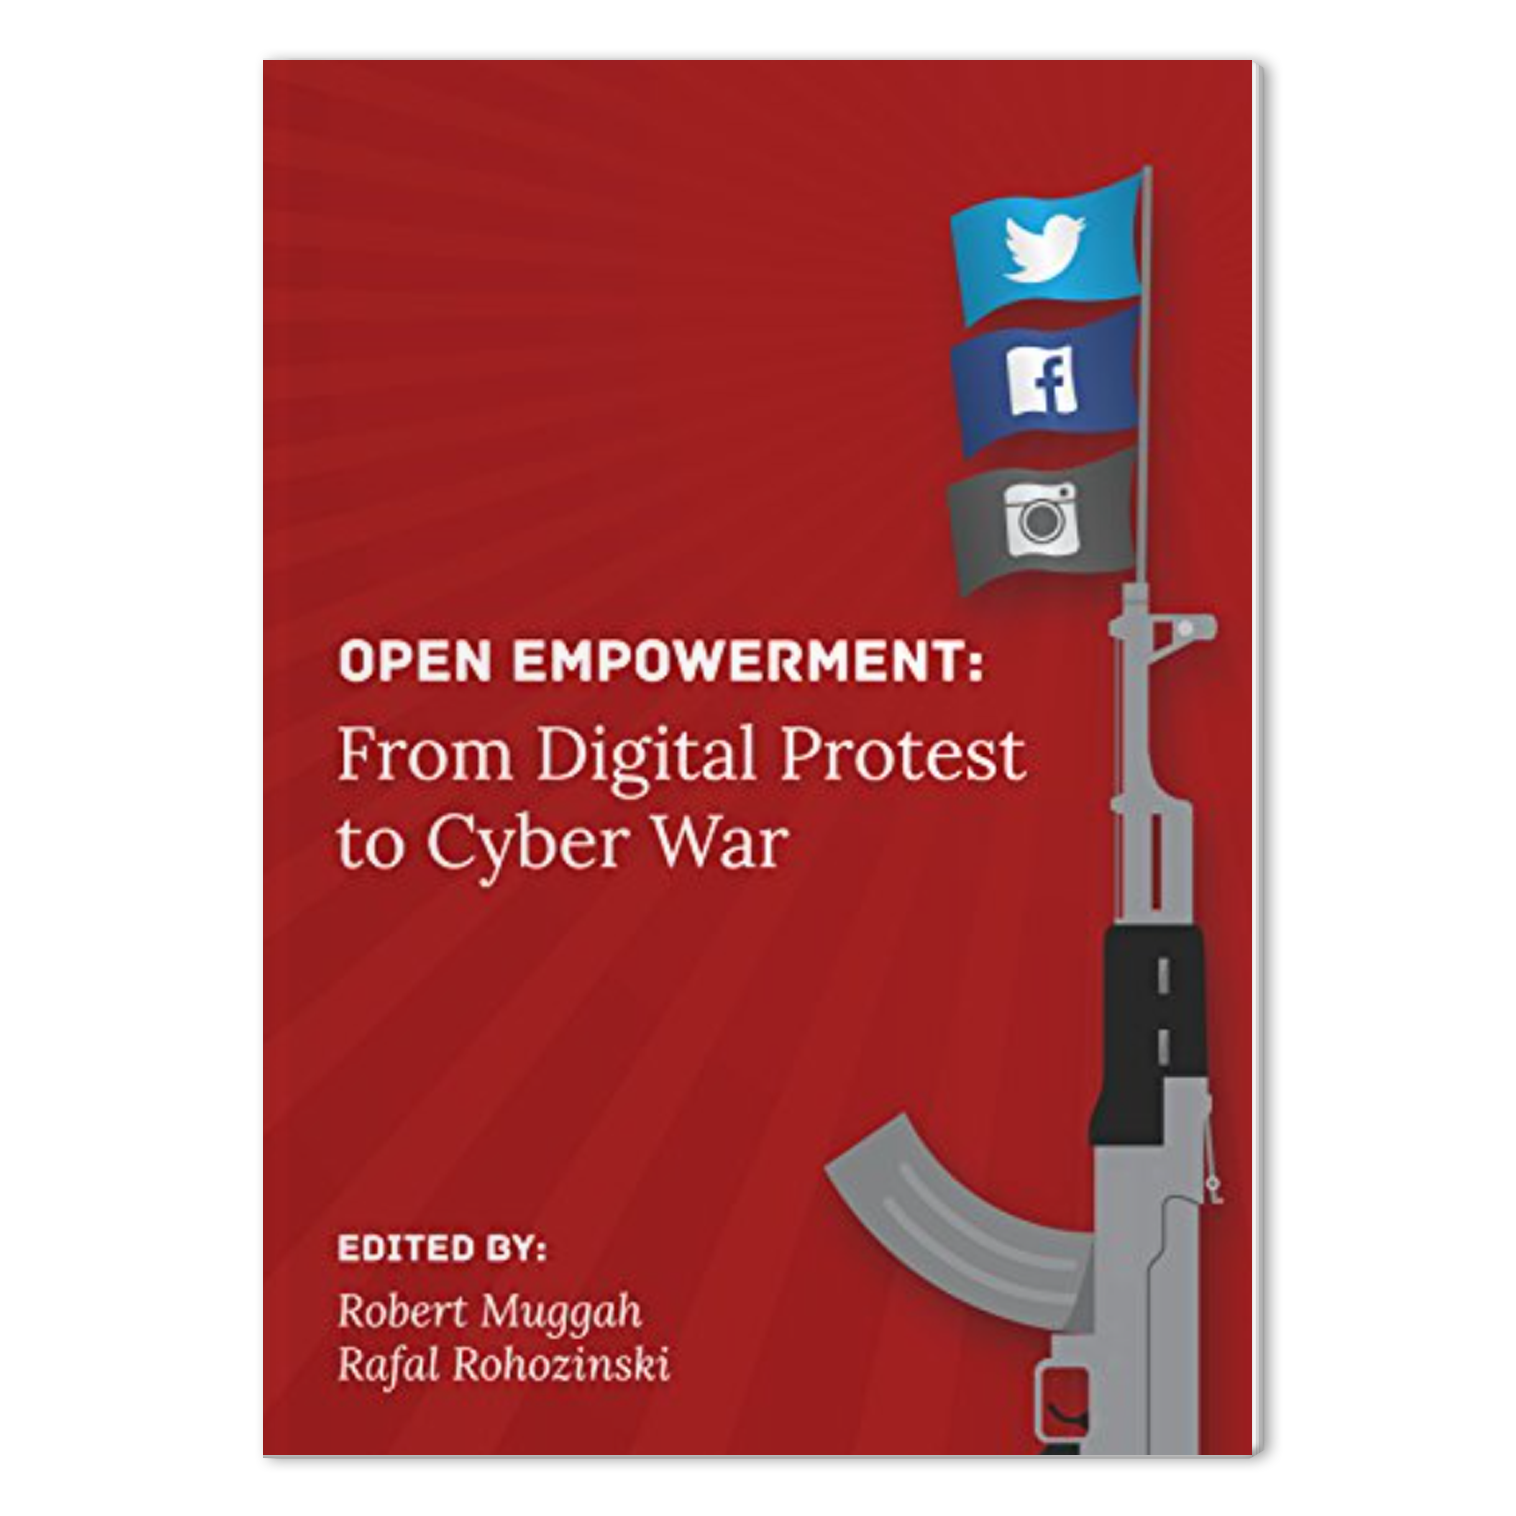 Open Empowerment: From Digital Protest to Cyber War